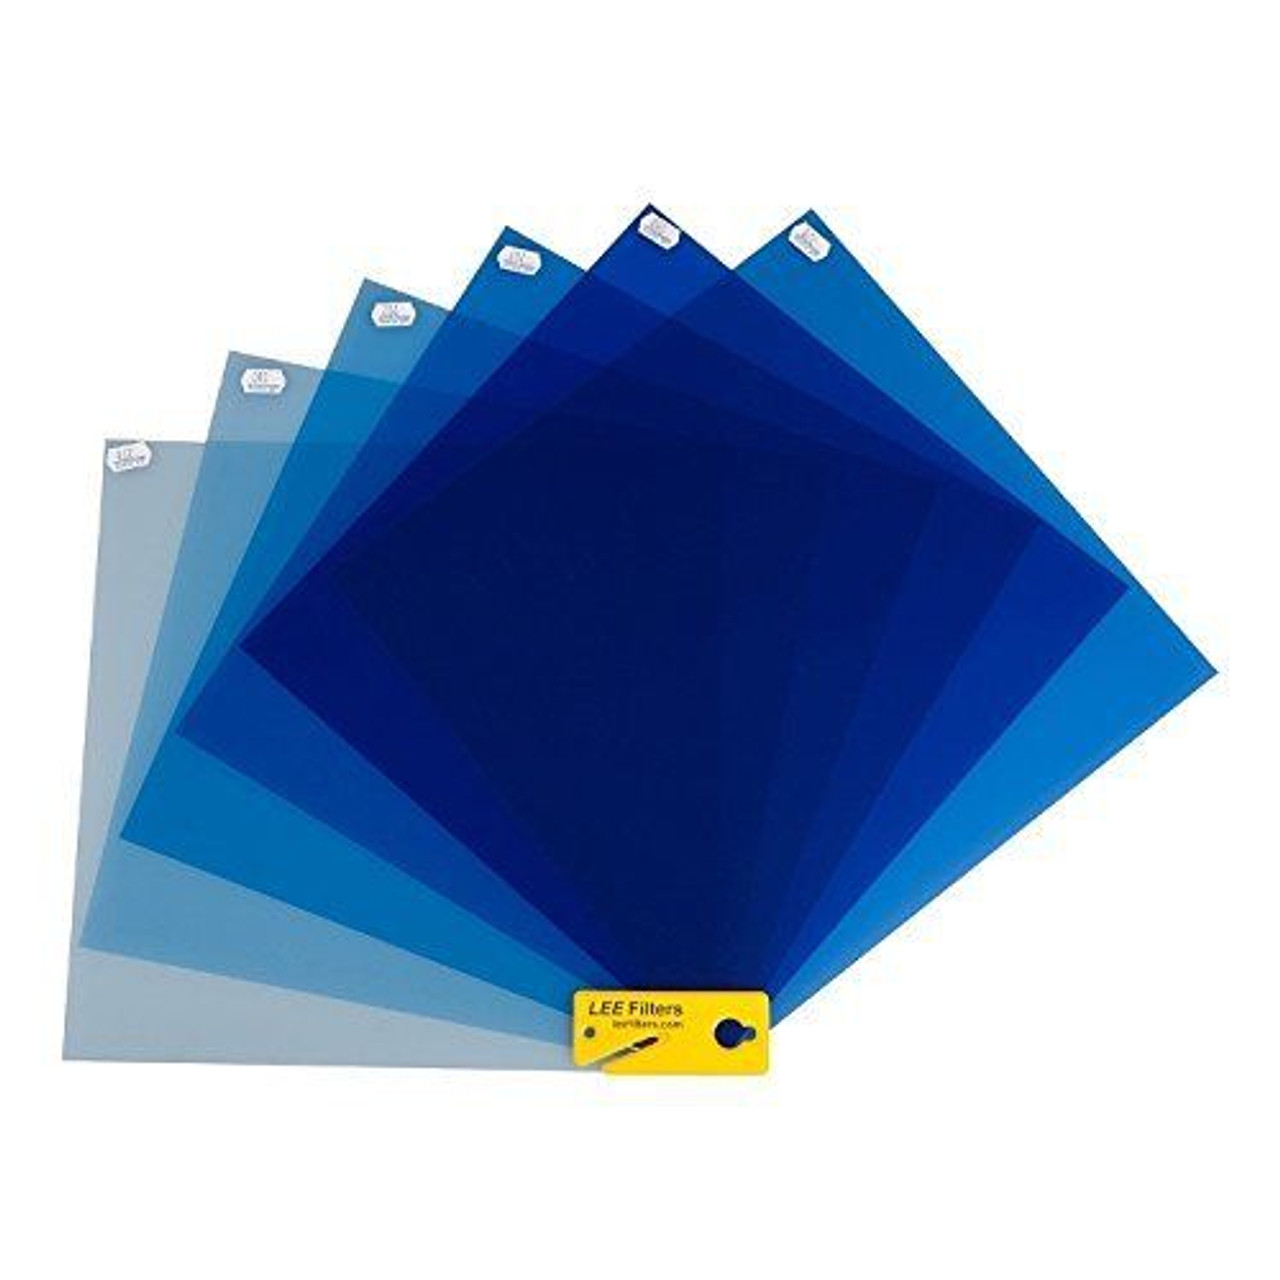 505- Tungsten to Daylight (12 Sheets), Gels